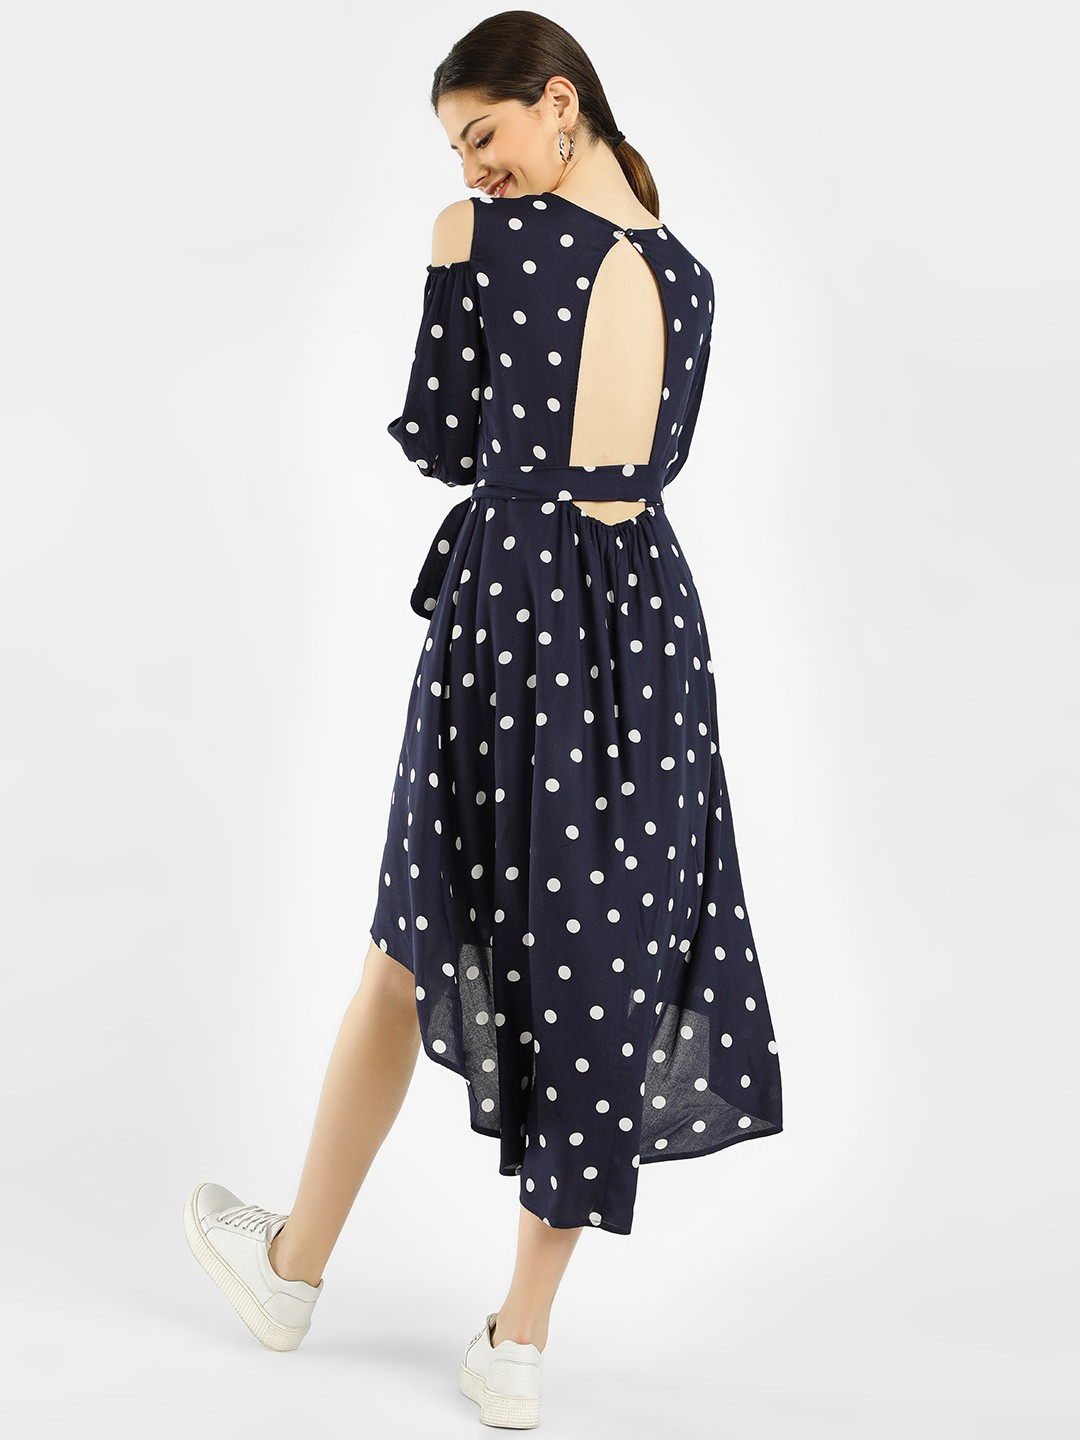 Femella Navy Polka Dot Print Asymmetric Dress 1